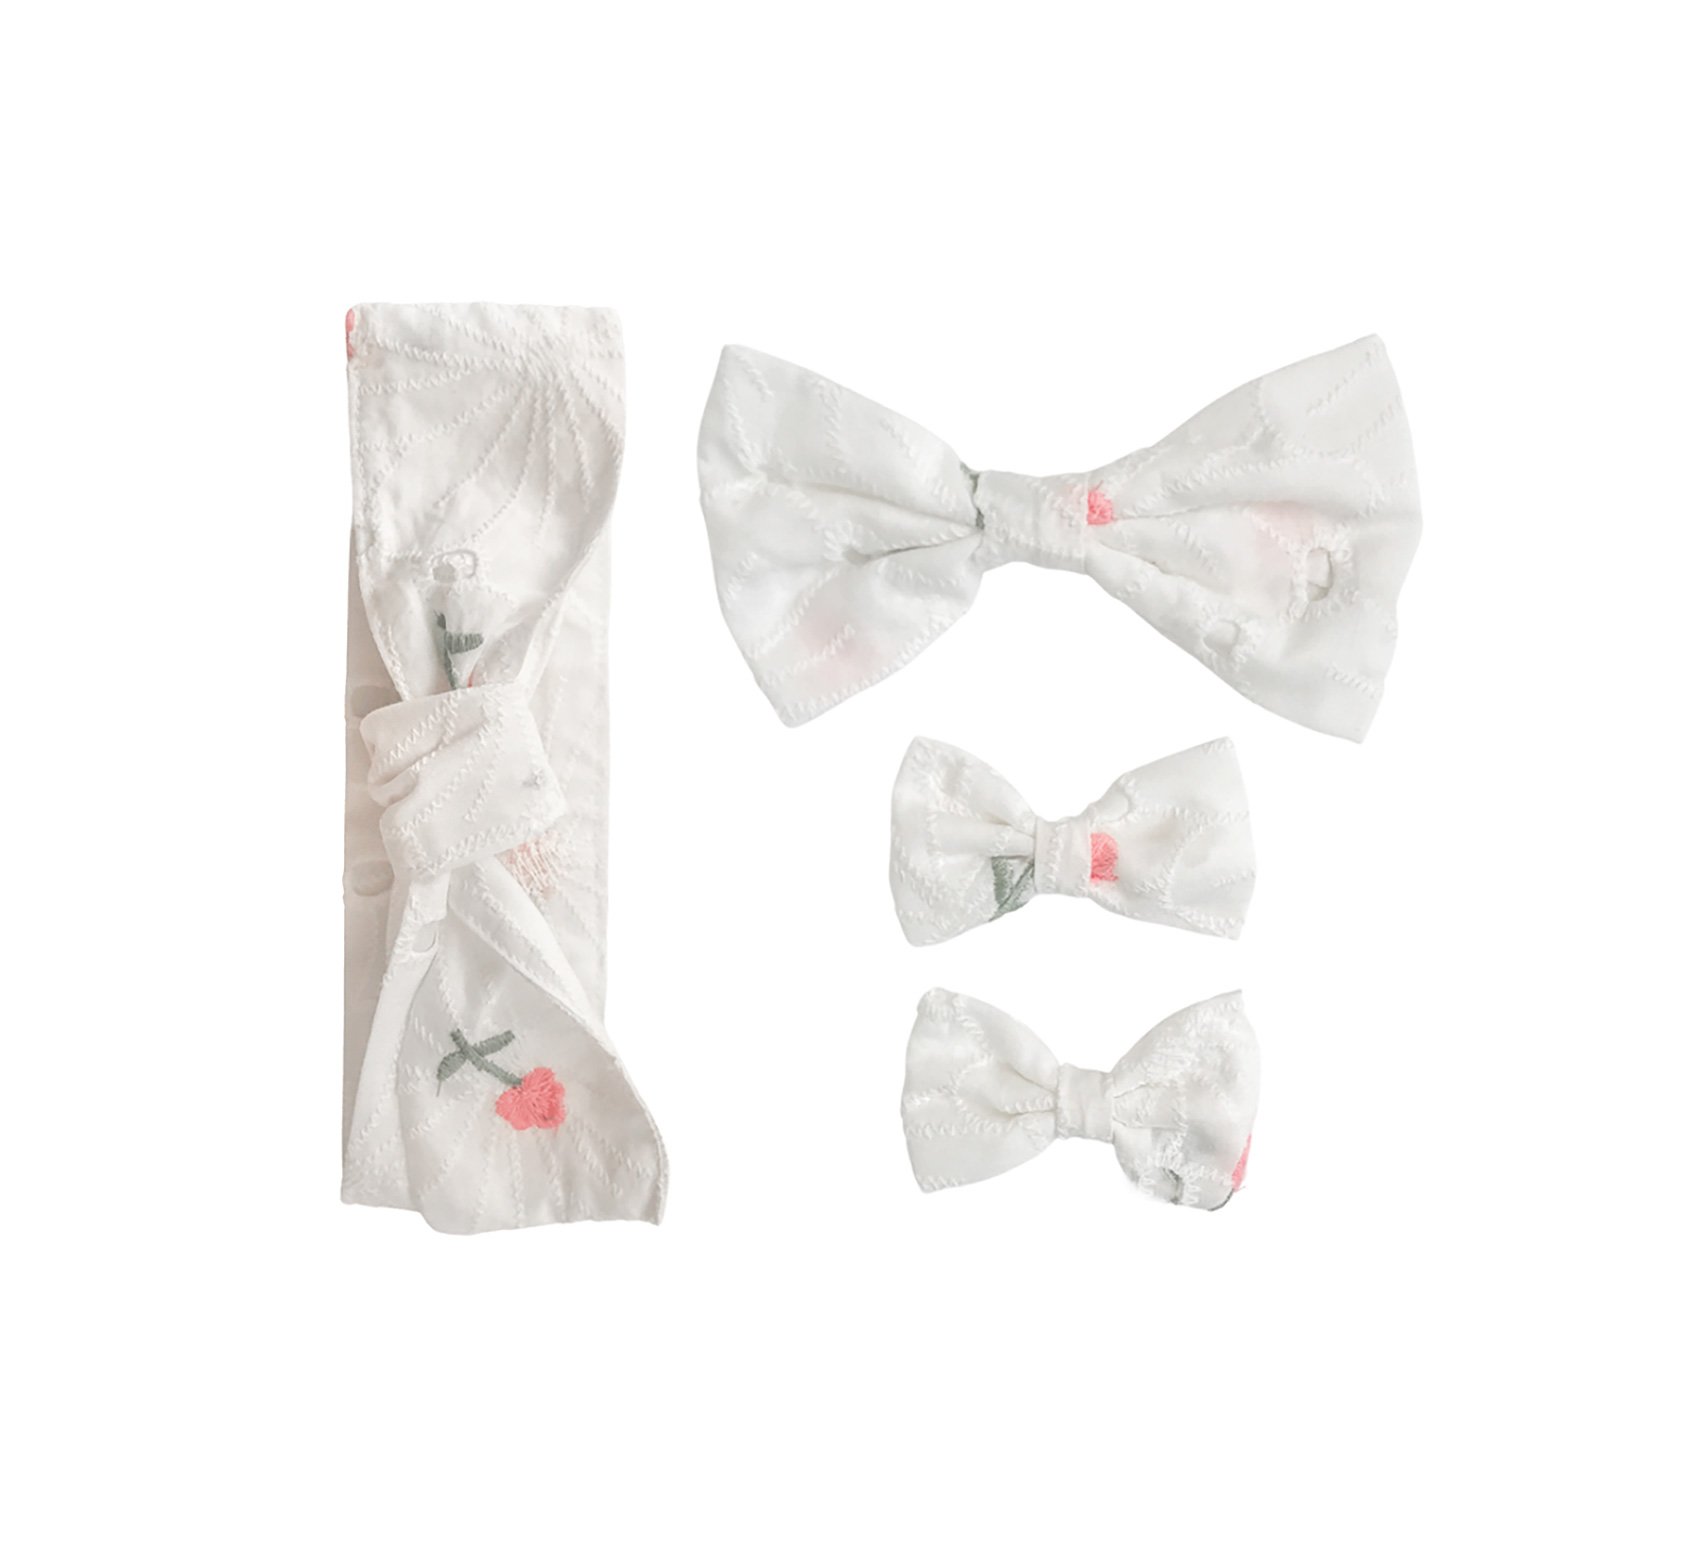 Tinkerbell Broderie Anglaise Accessories